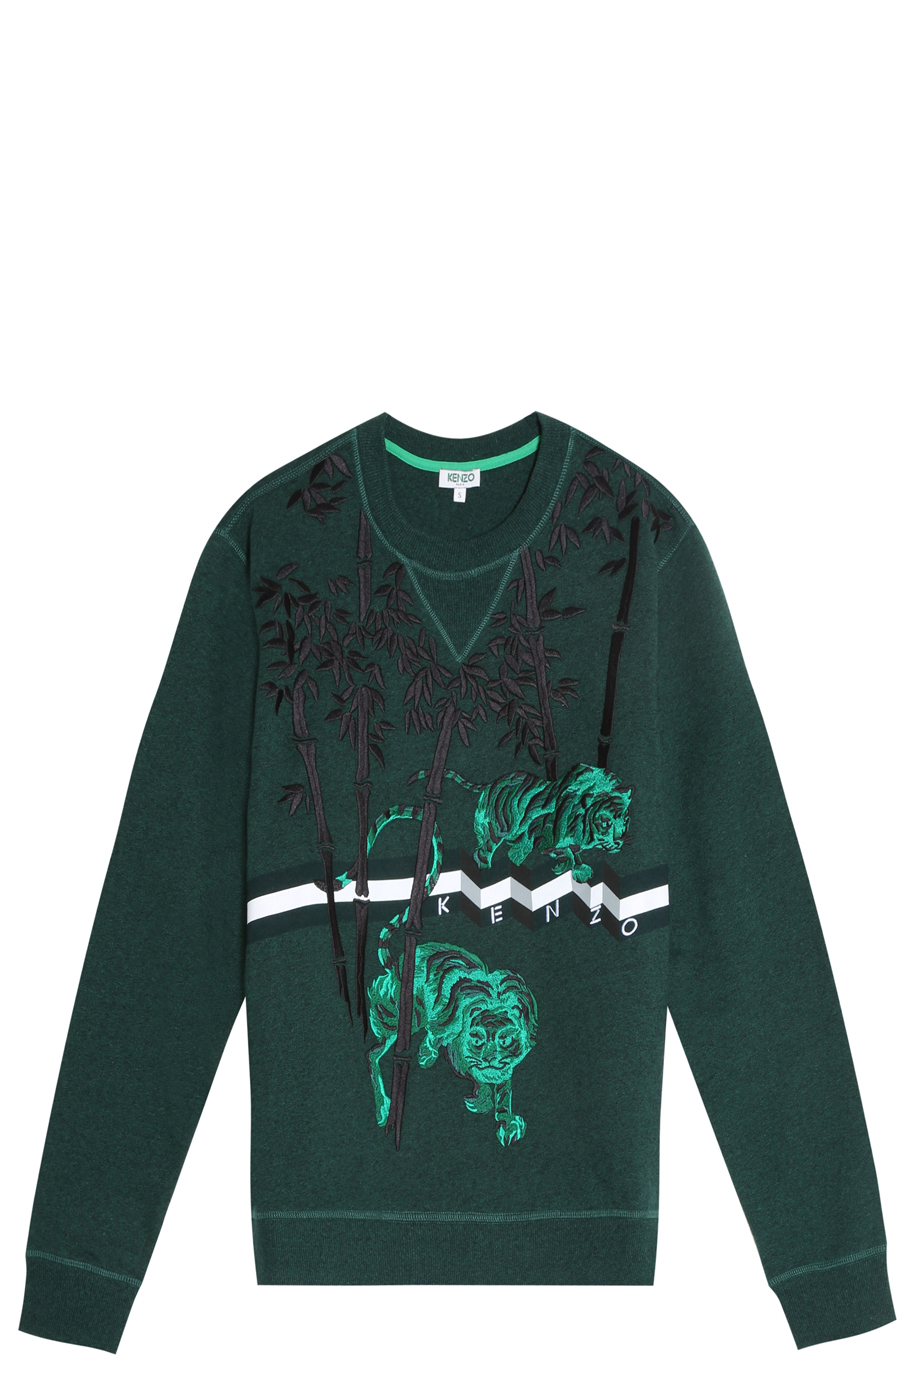 a54877004 KENZO Bamboo Tiger Sweater in Green for Men - Lyst